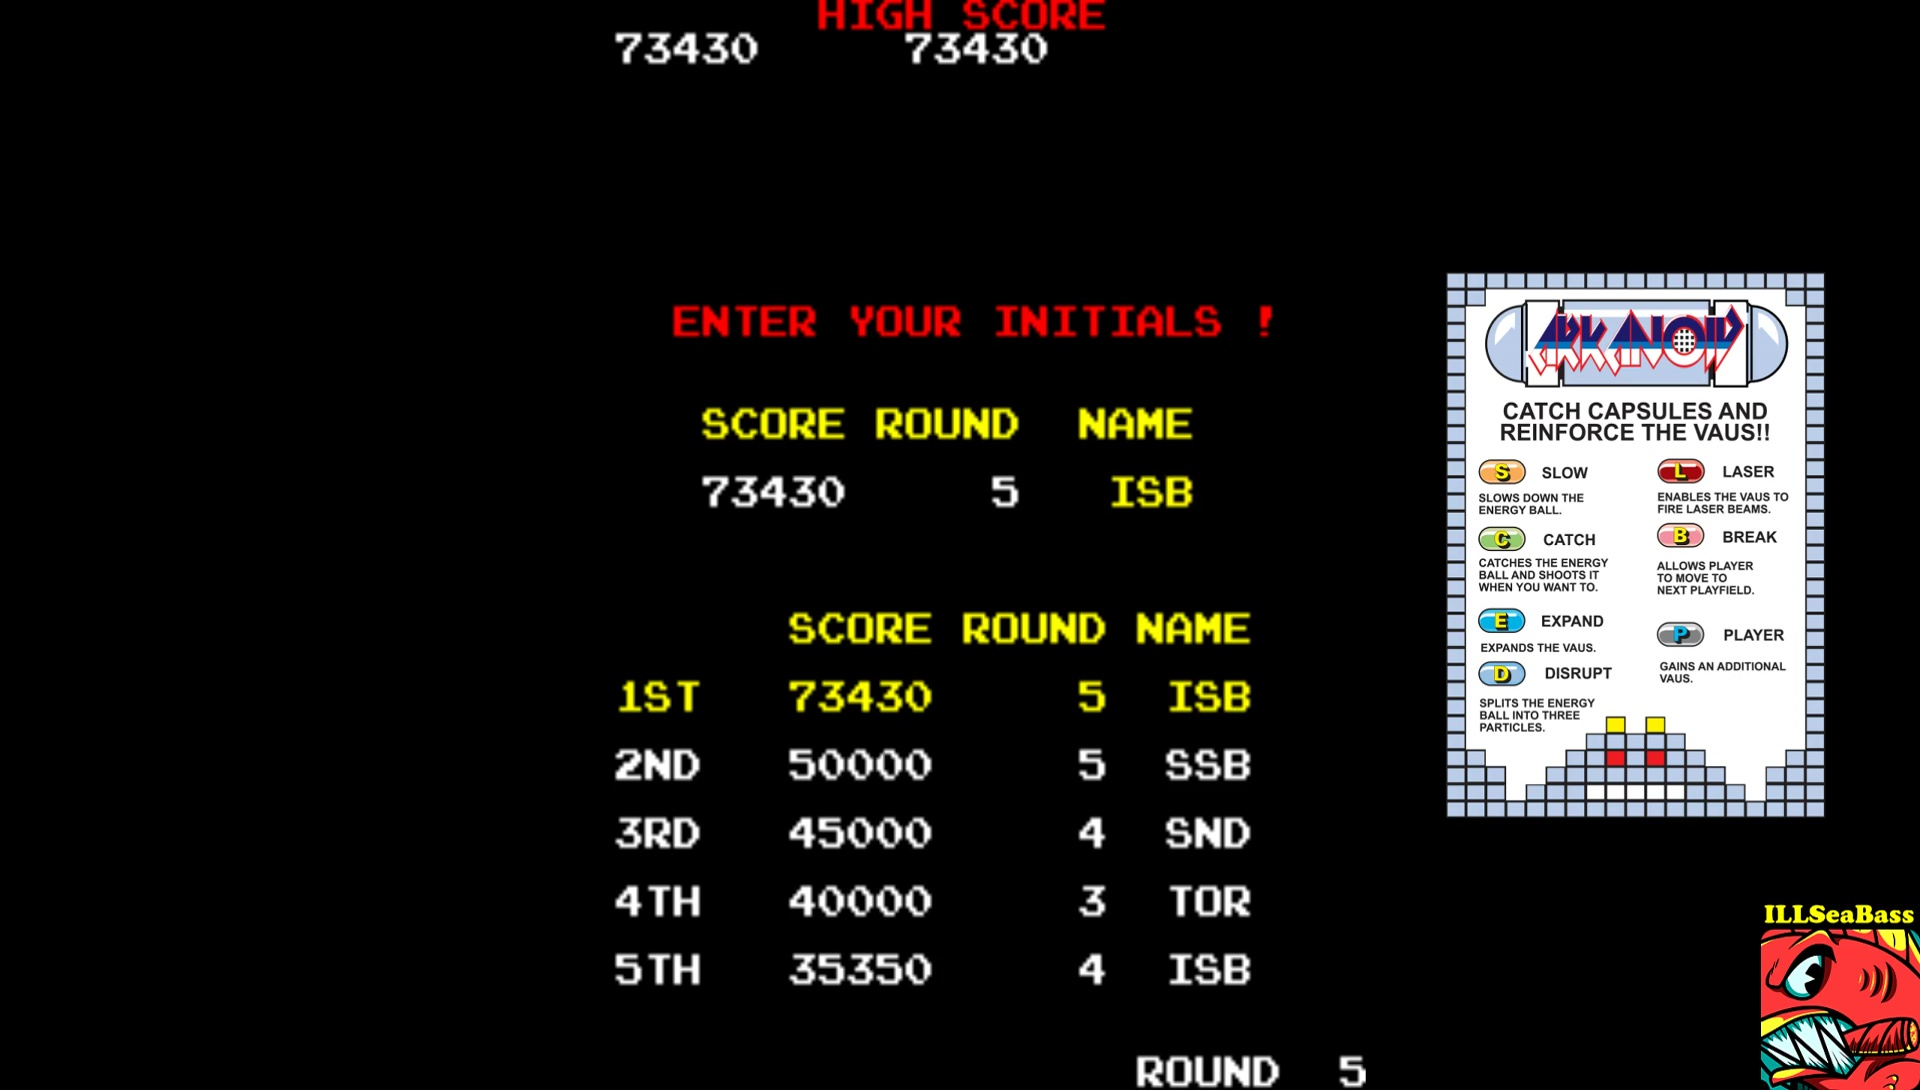 ILLSeaBass: Arkanoid (Arcade Emulated / M.A.M.E.) 73,340 points on 2017-09-05 00:15:17